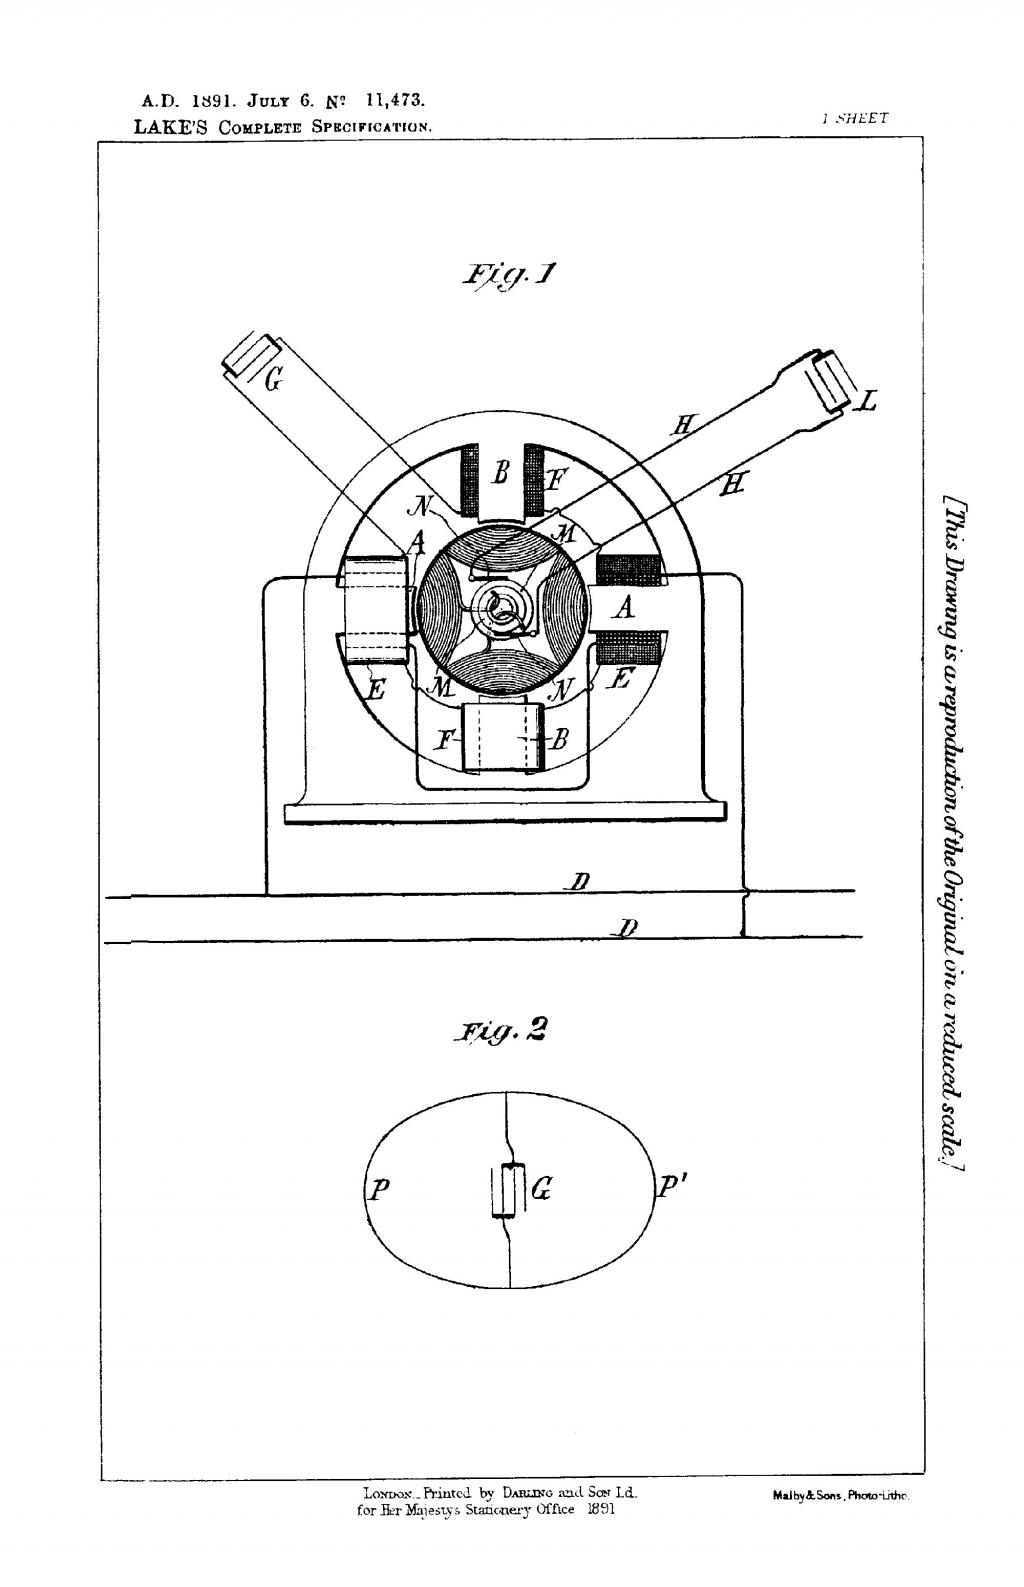 Nikola Tesla British Patent 11,473 - Improvements in Alternating Current Electro-Magnetic Motors - Image 1